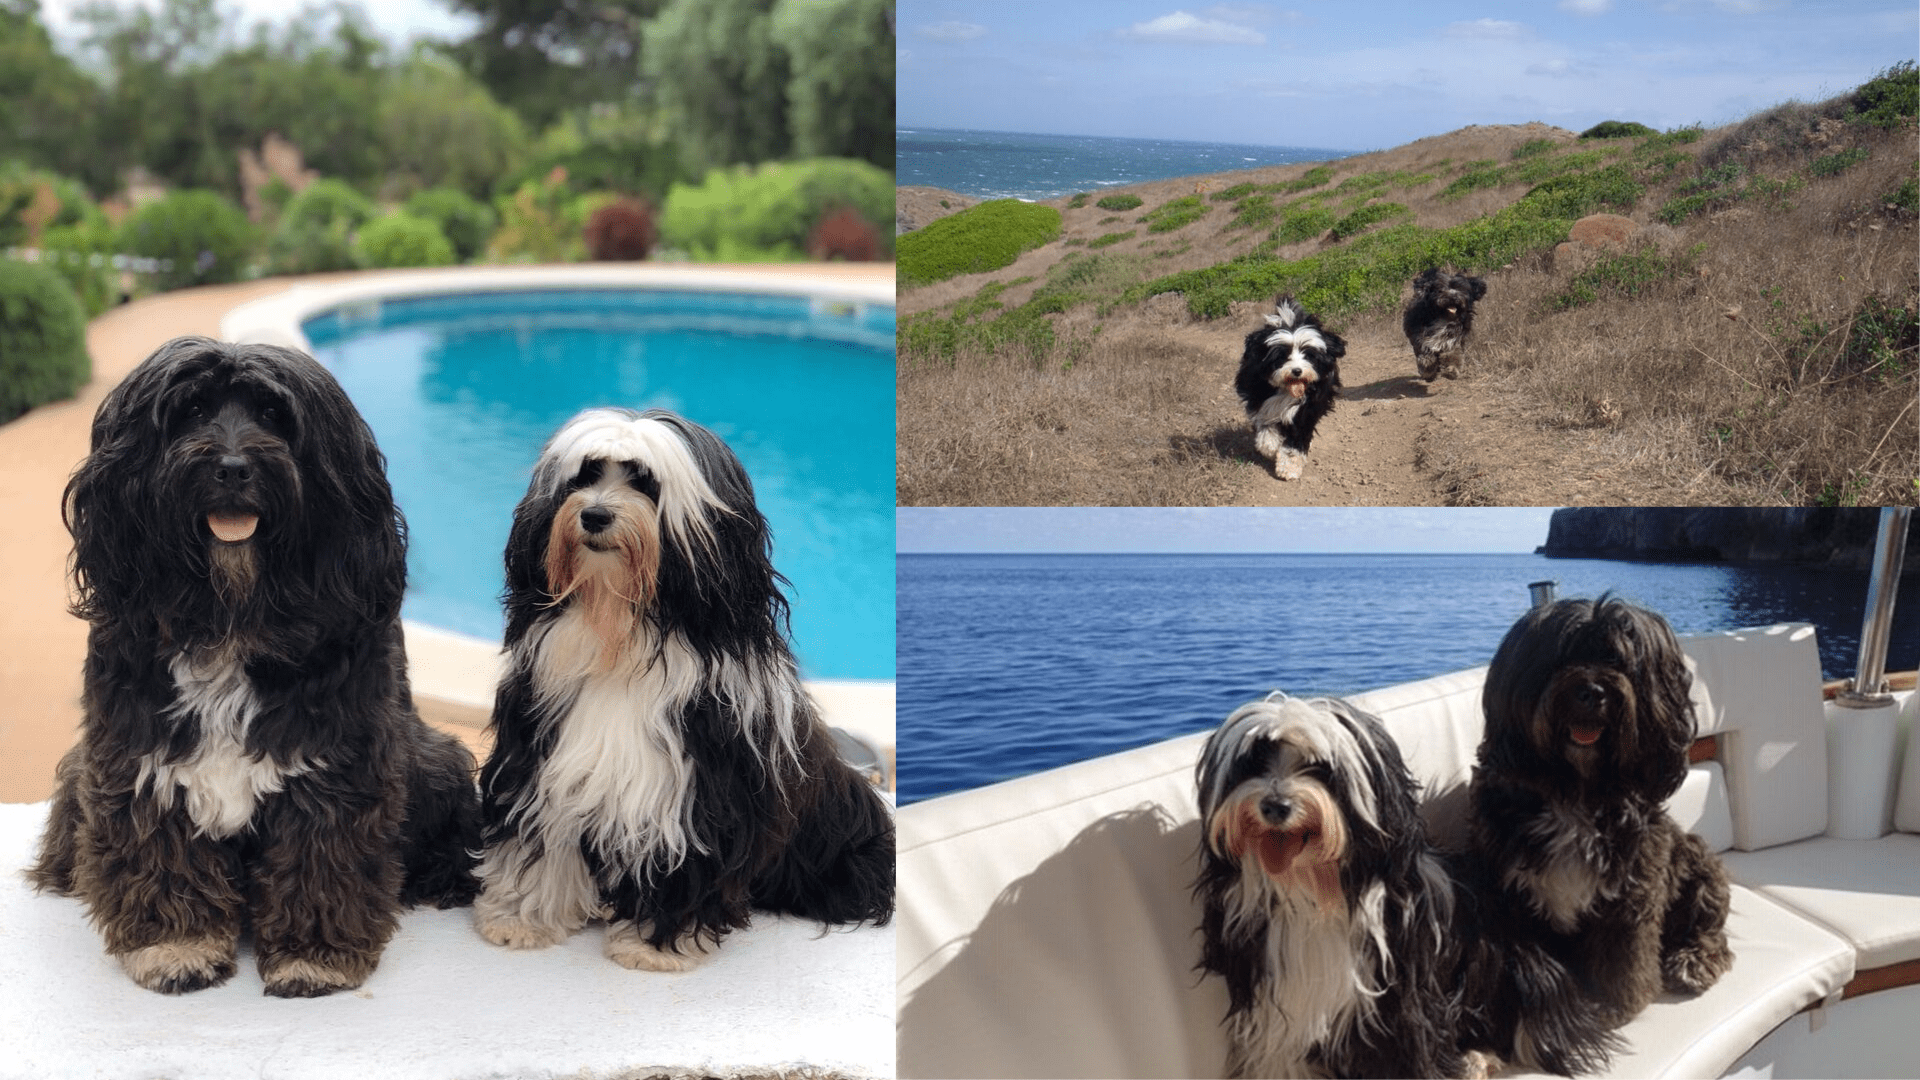 The dogs enjoying their time in Menorca